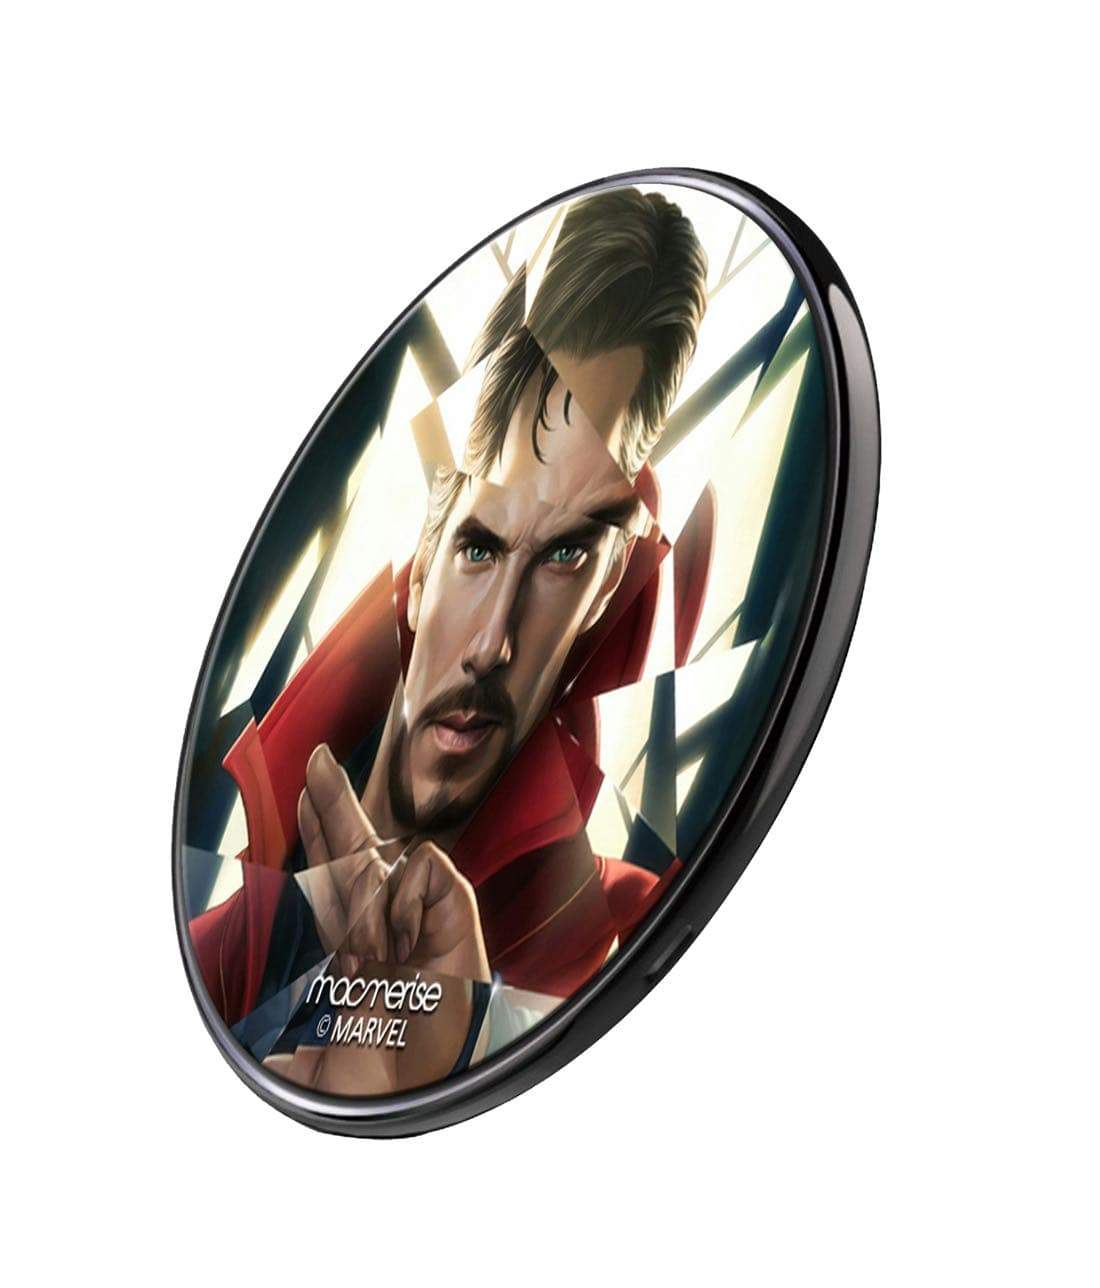 Doctor Strange Geometric Wireless Charger by Macmerise